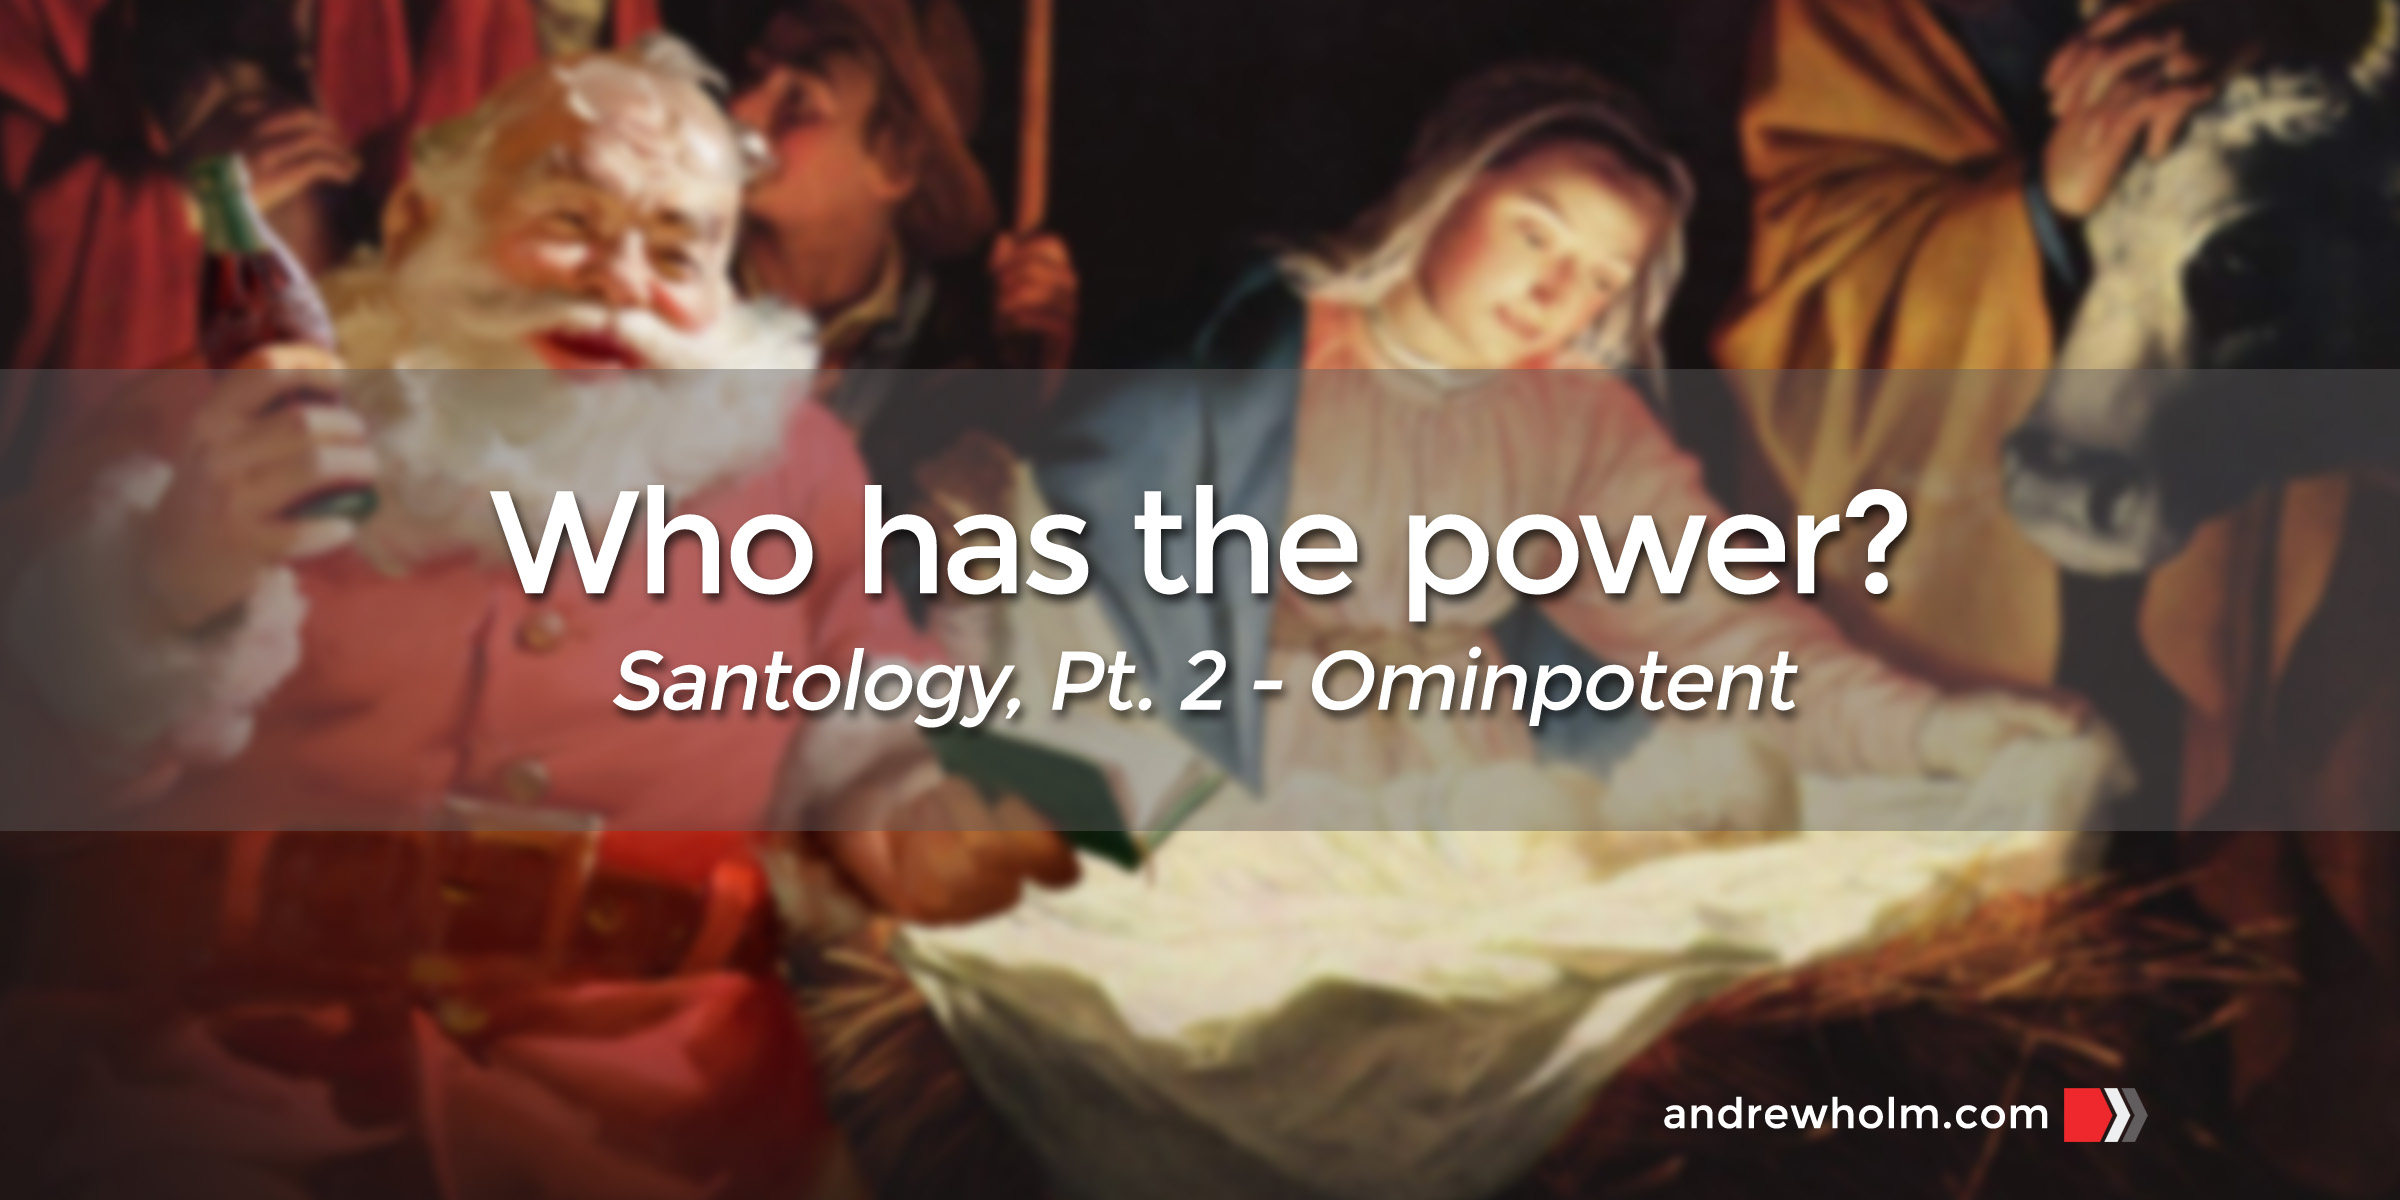 Santology, Part 2 – Who has the power? (Omnipotent?)